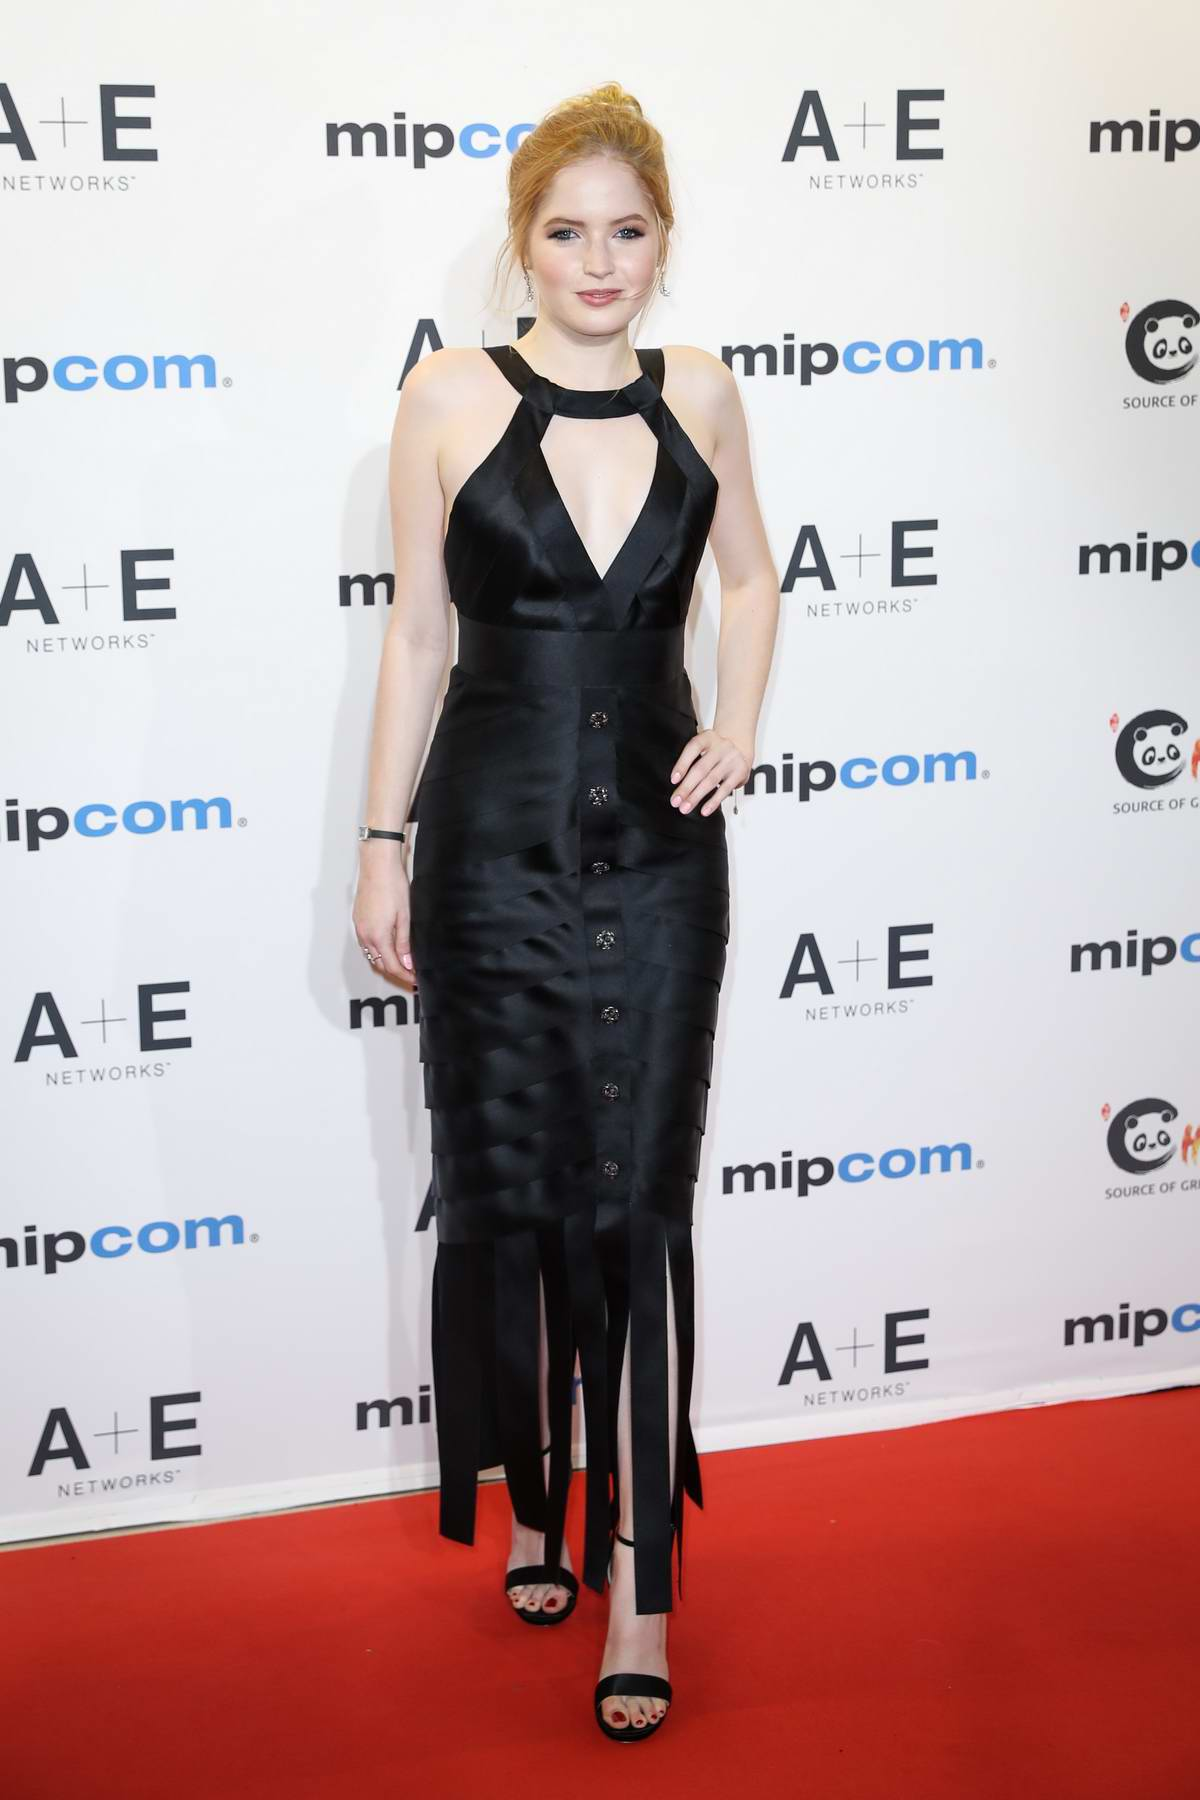 Ellie Bamber attends the red carpet at MIPCOM 2018 Opening in Cannes, France